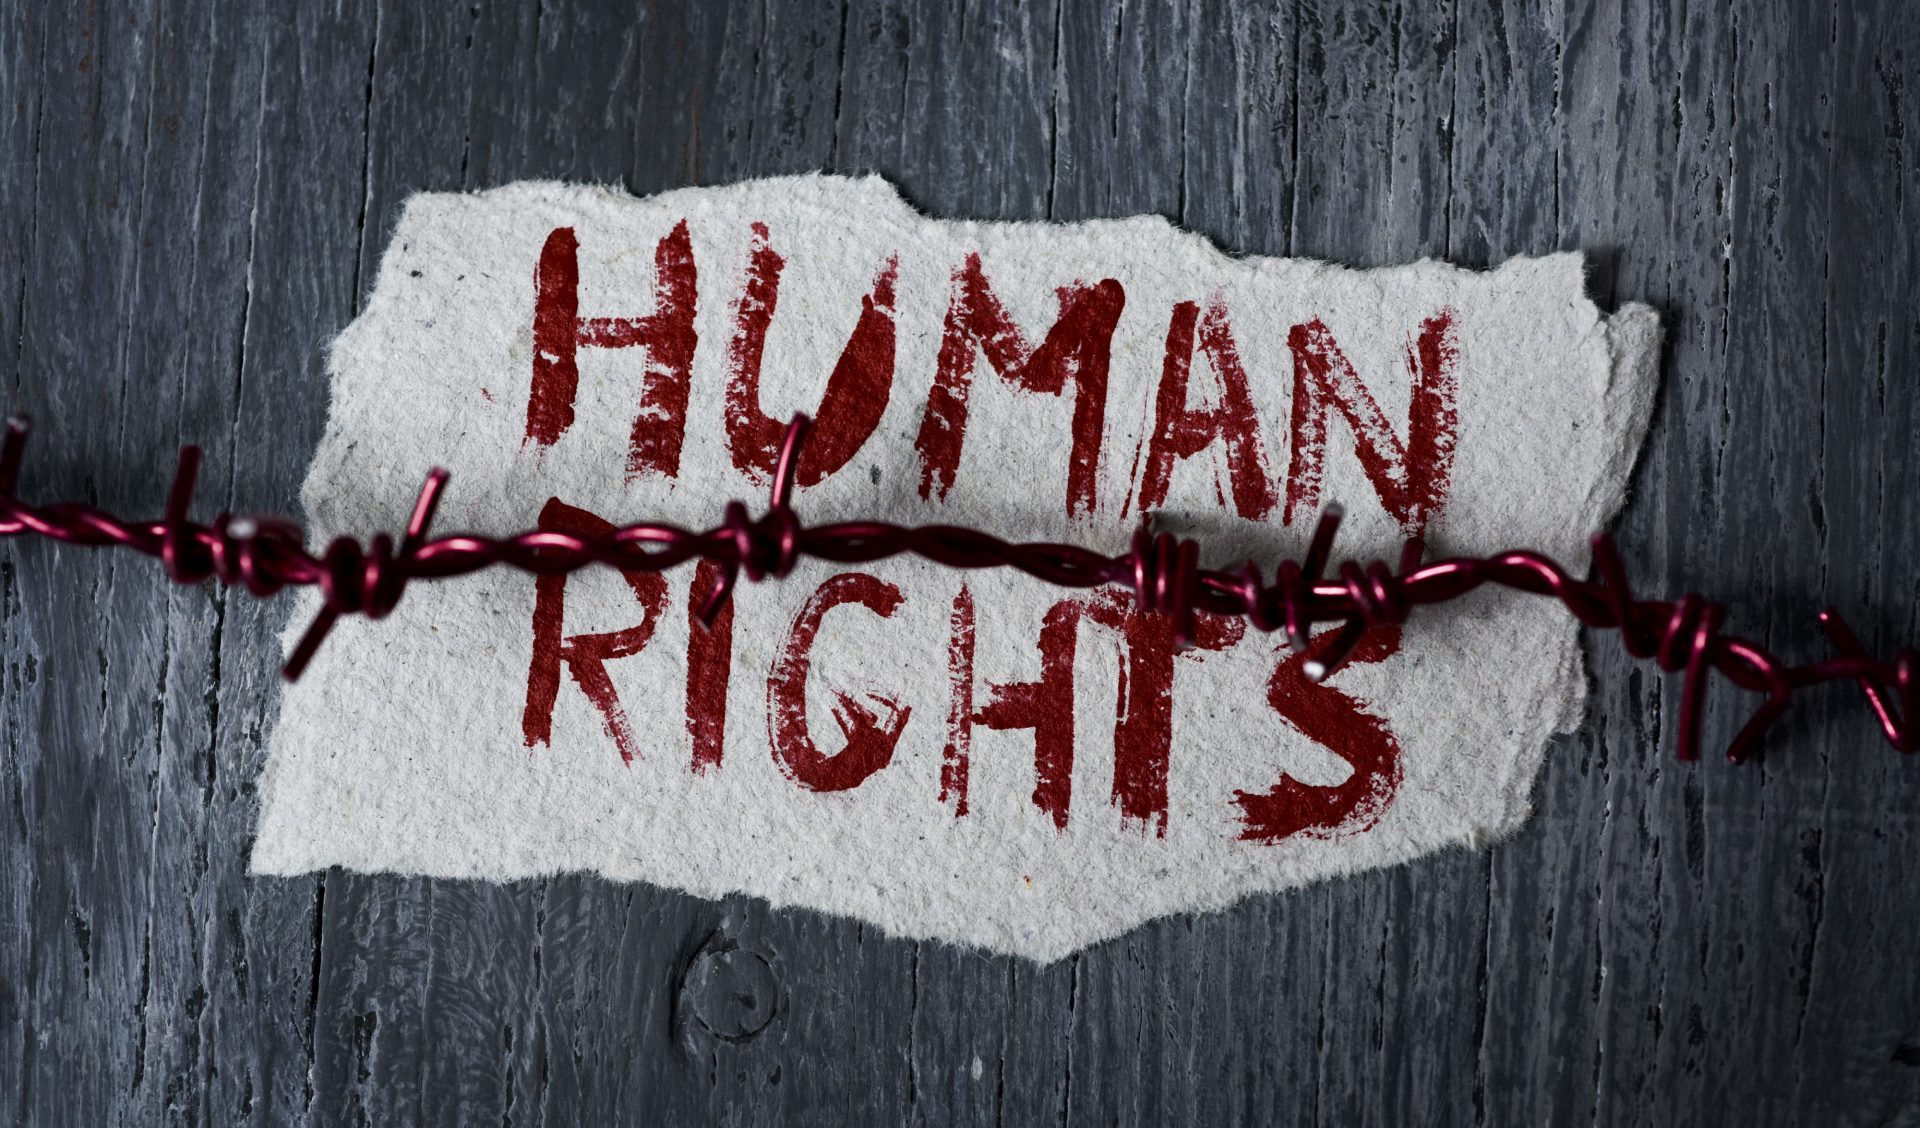 Human Rights painted on the wall.